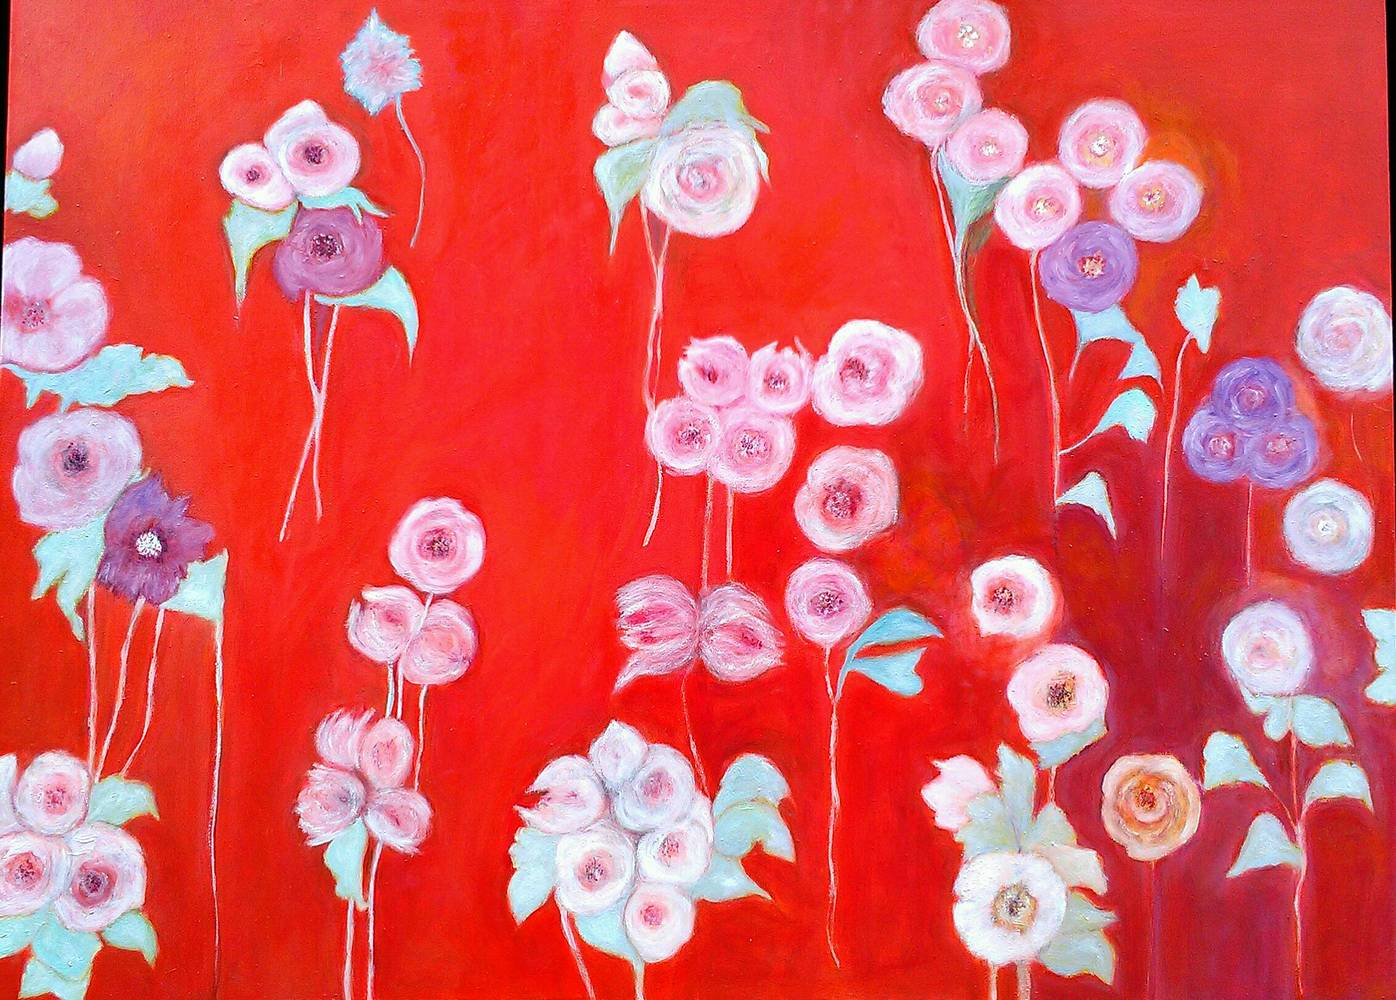 Oil painting Spring, oil, 122 x 92 cm by Gwenda Branjerdporn